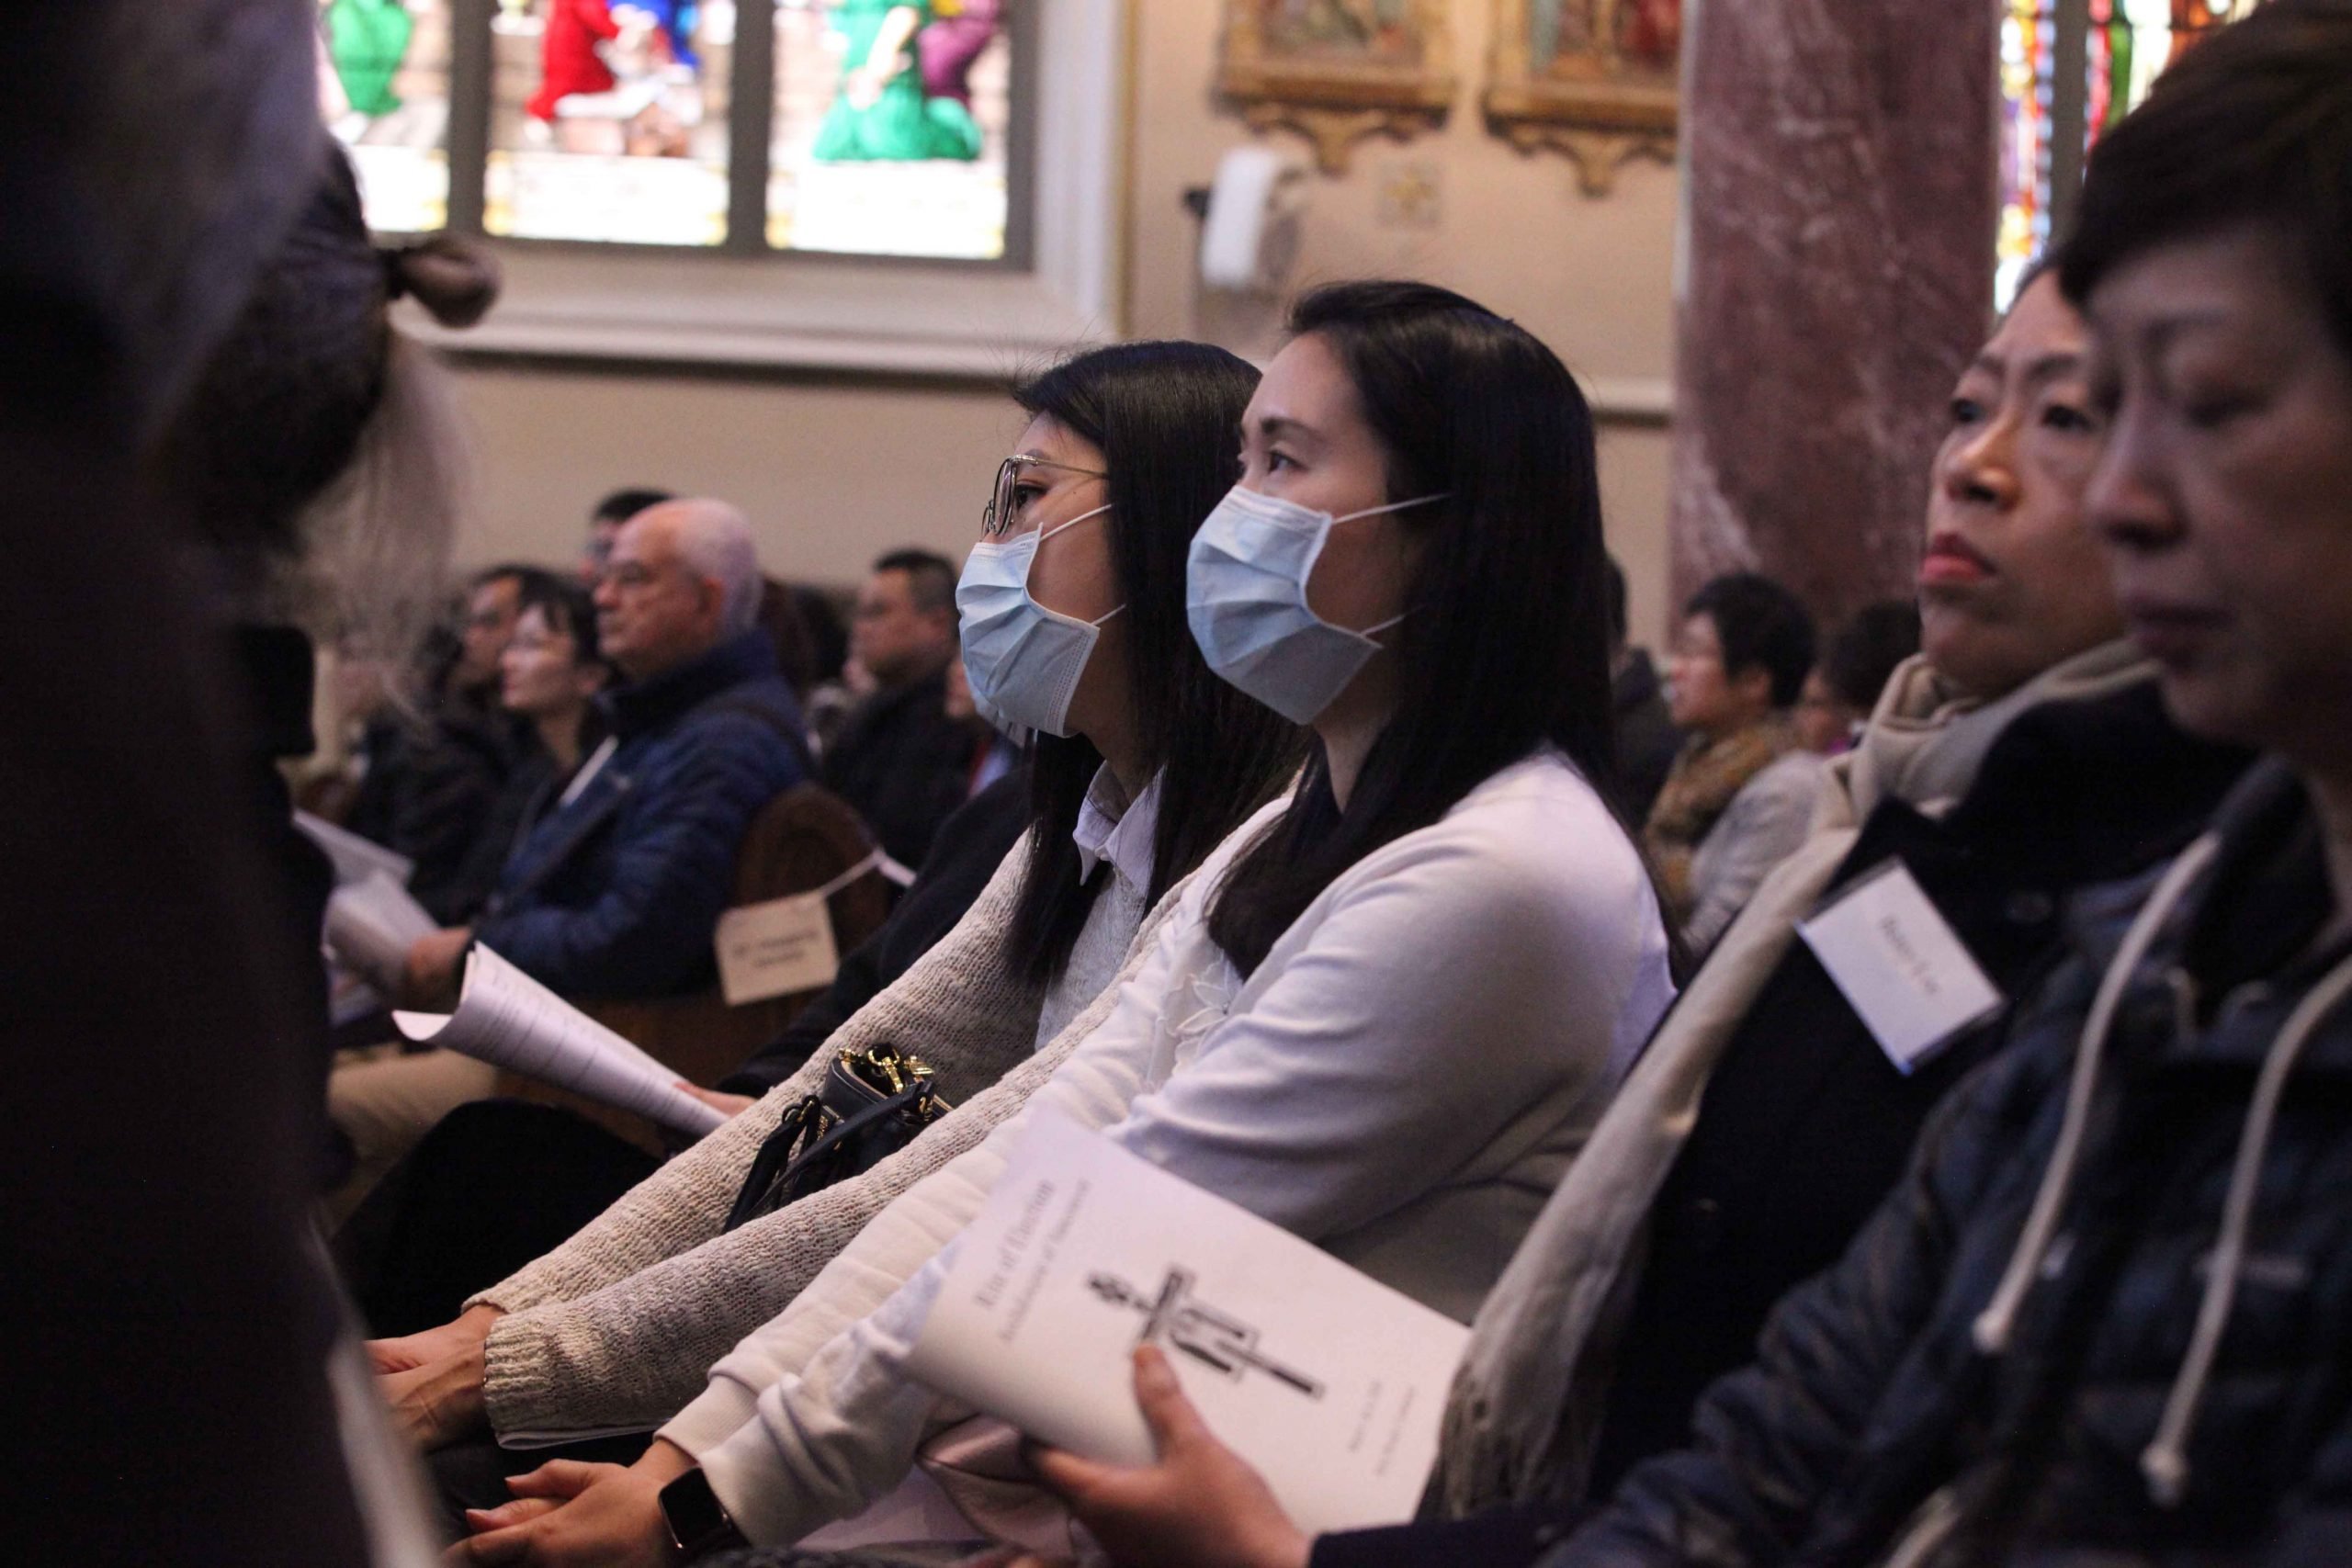 Vancouver's COVID-19 guidelines on Mass emphasize joy, hygiene and brevity